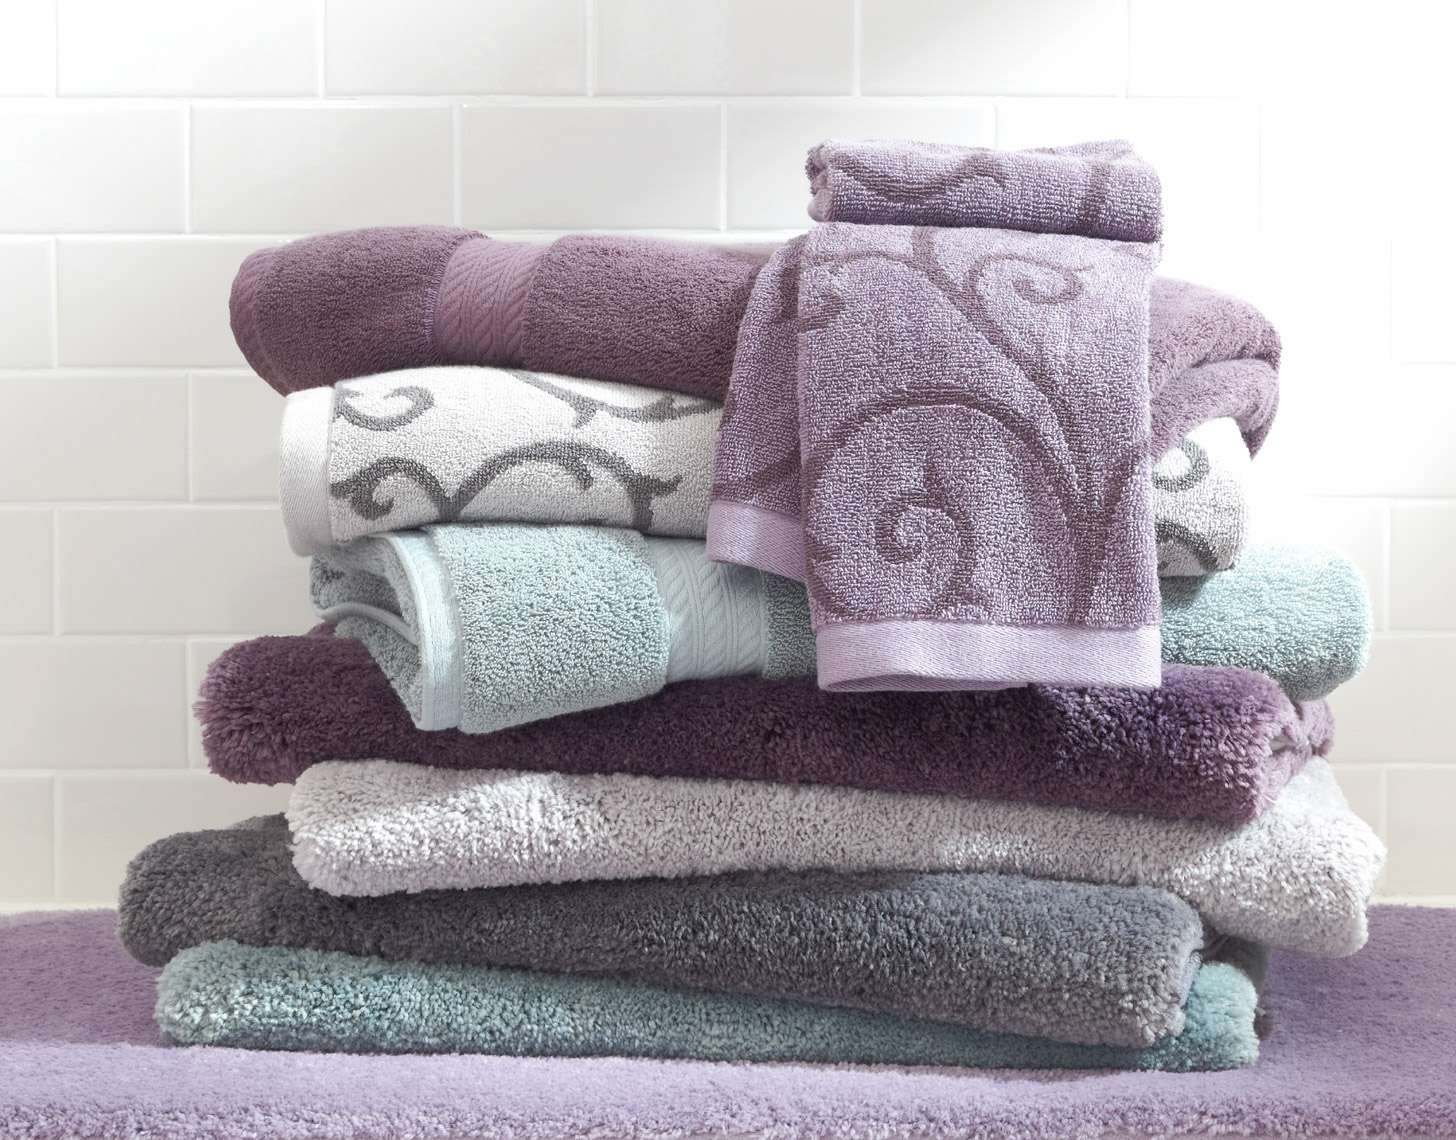 stacked plum and grey and teal towels on purple bathmat with white tile walls